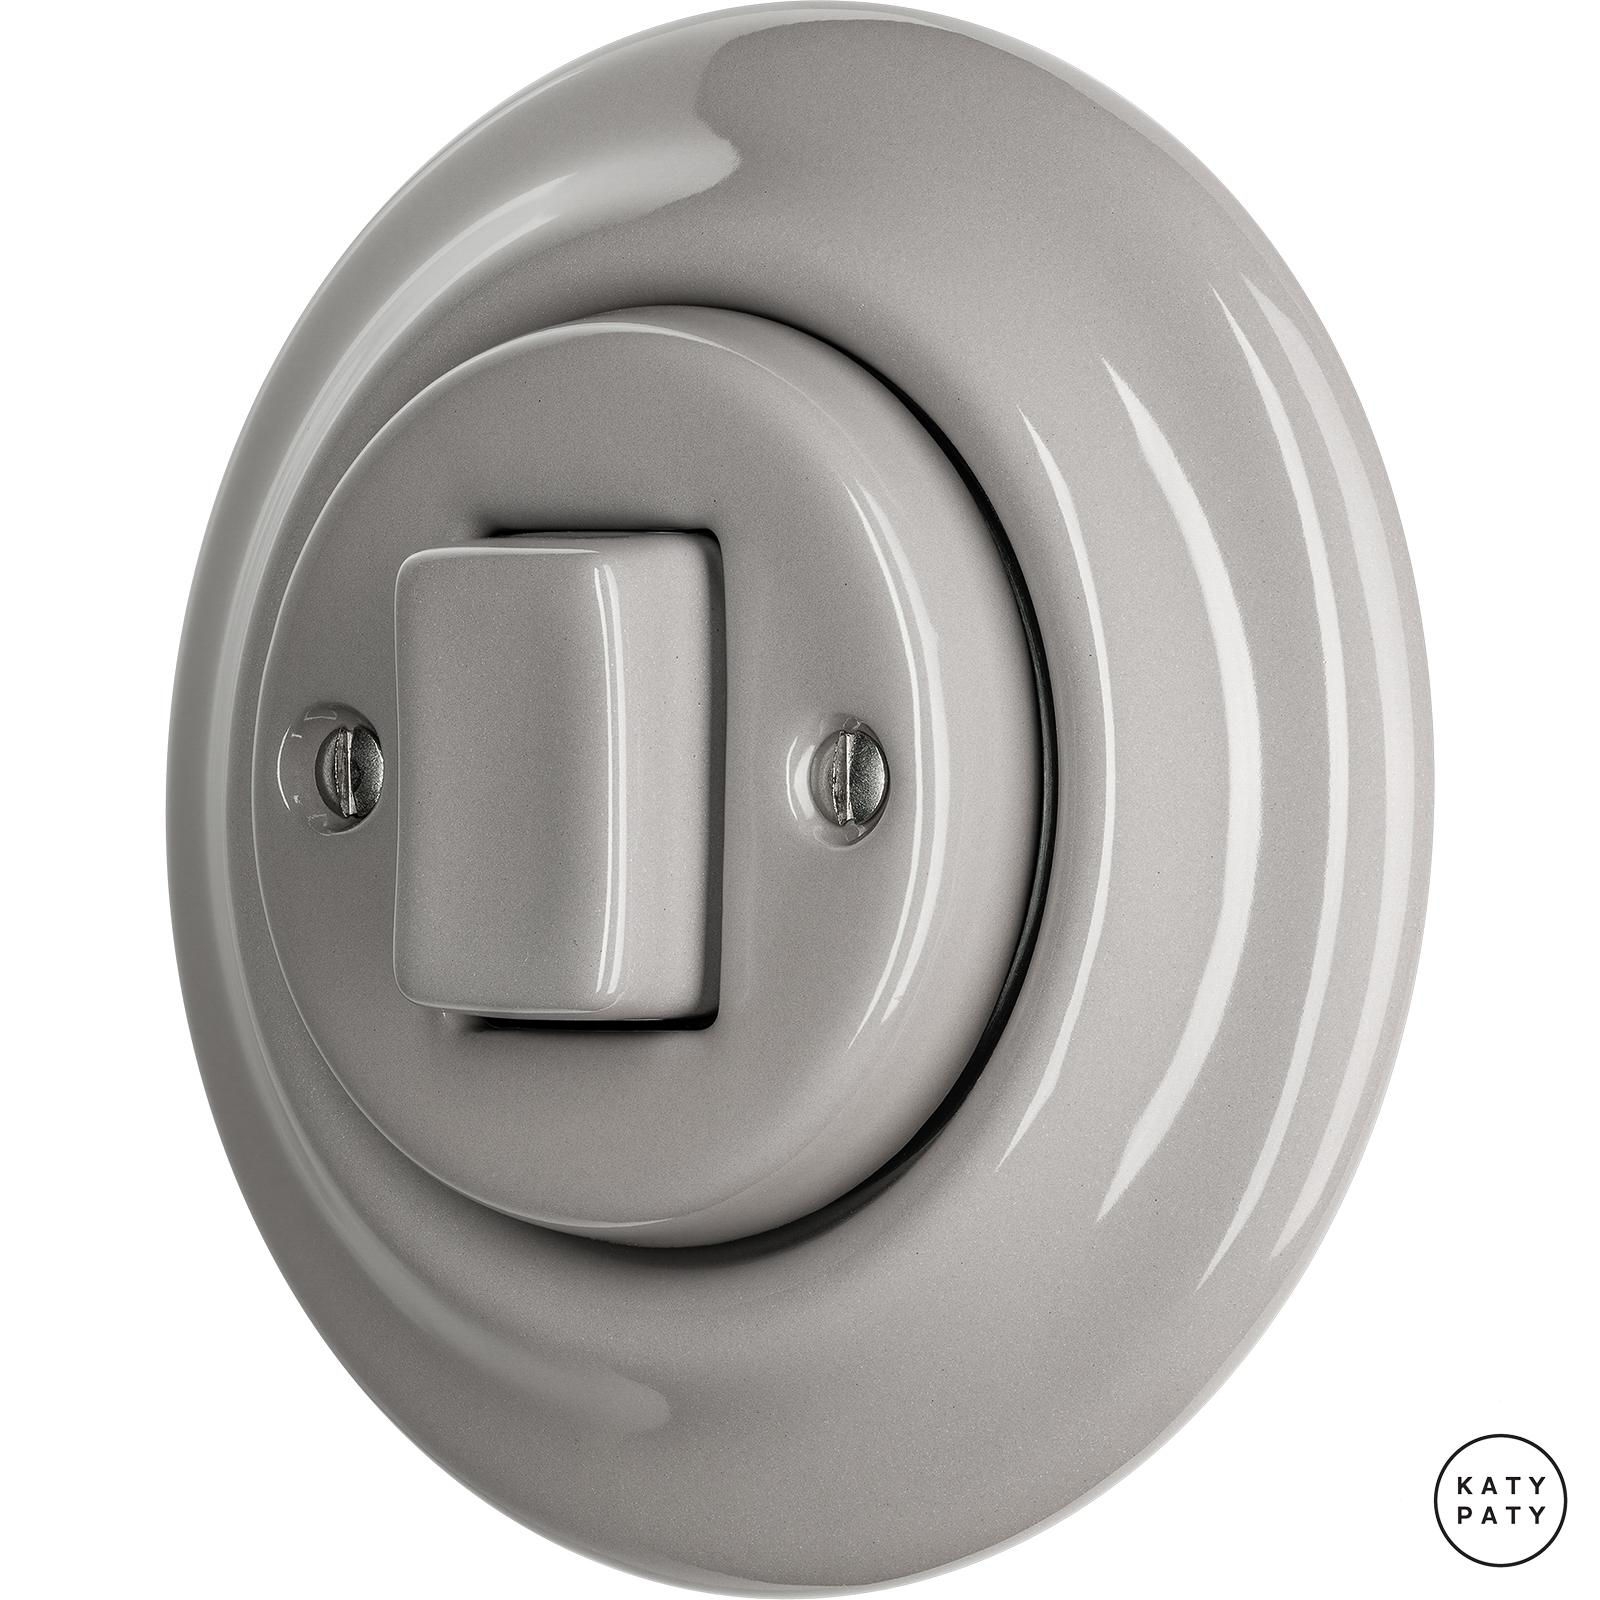 Porcelain switches - a single key - FAT ()  - LUCIDUM | Katy Paty